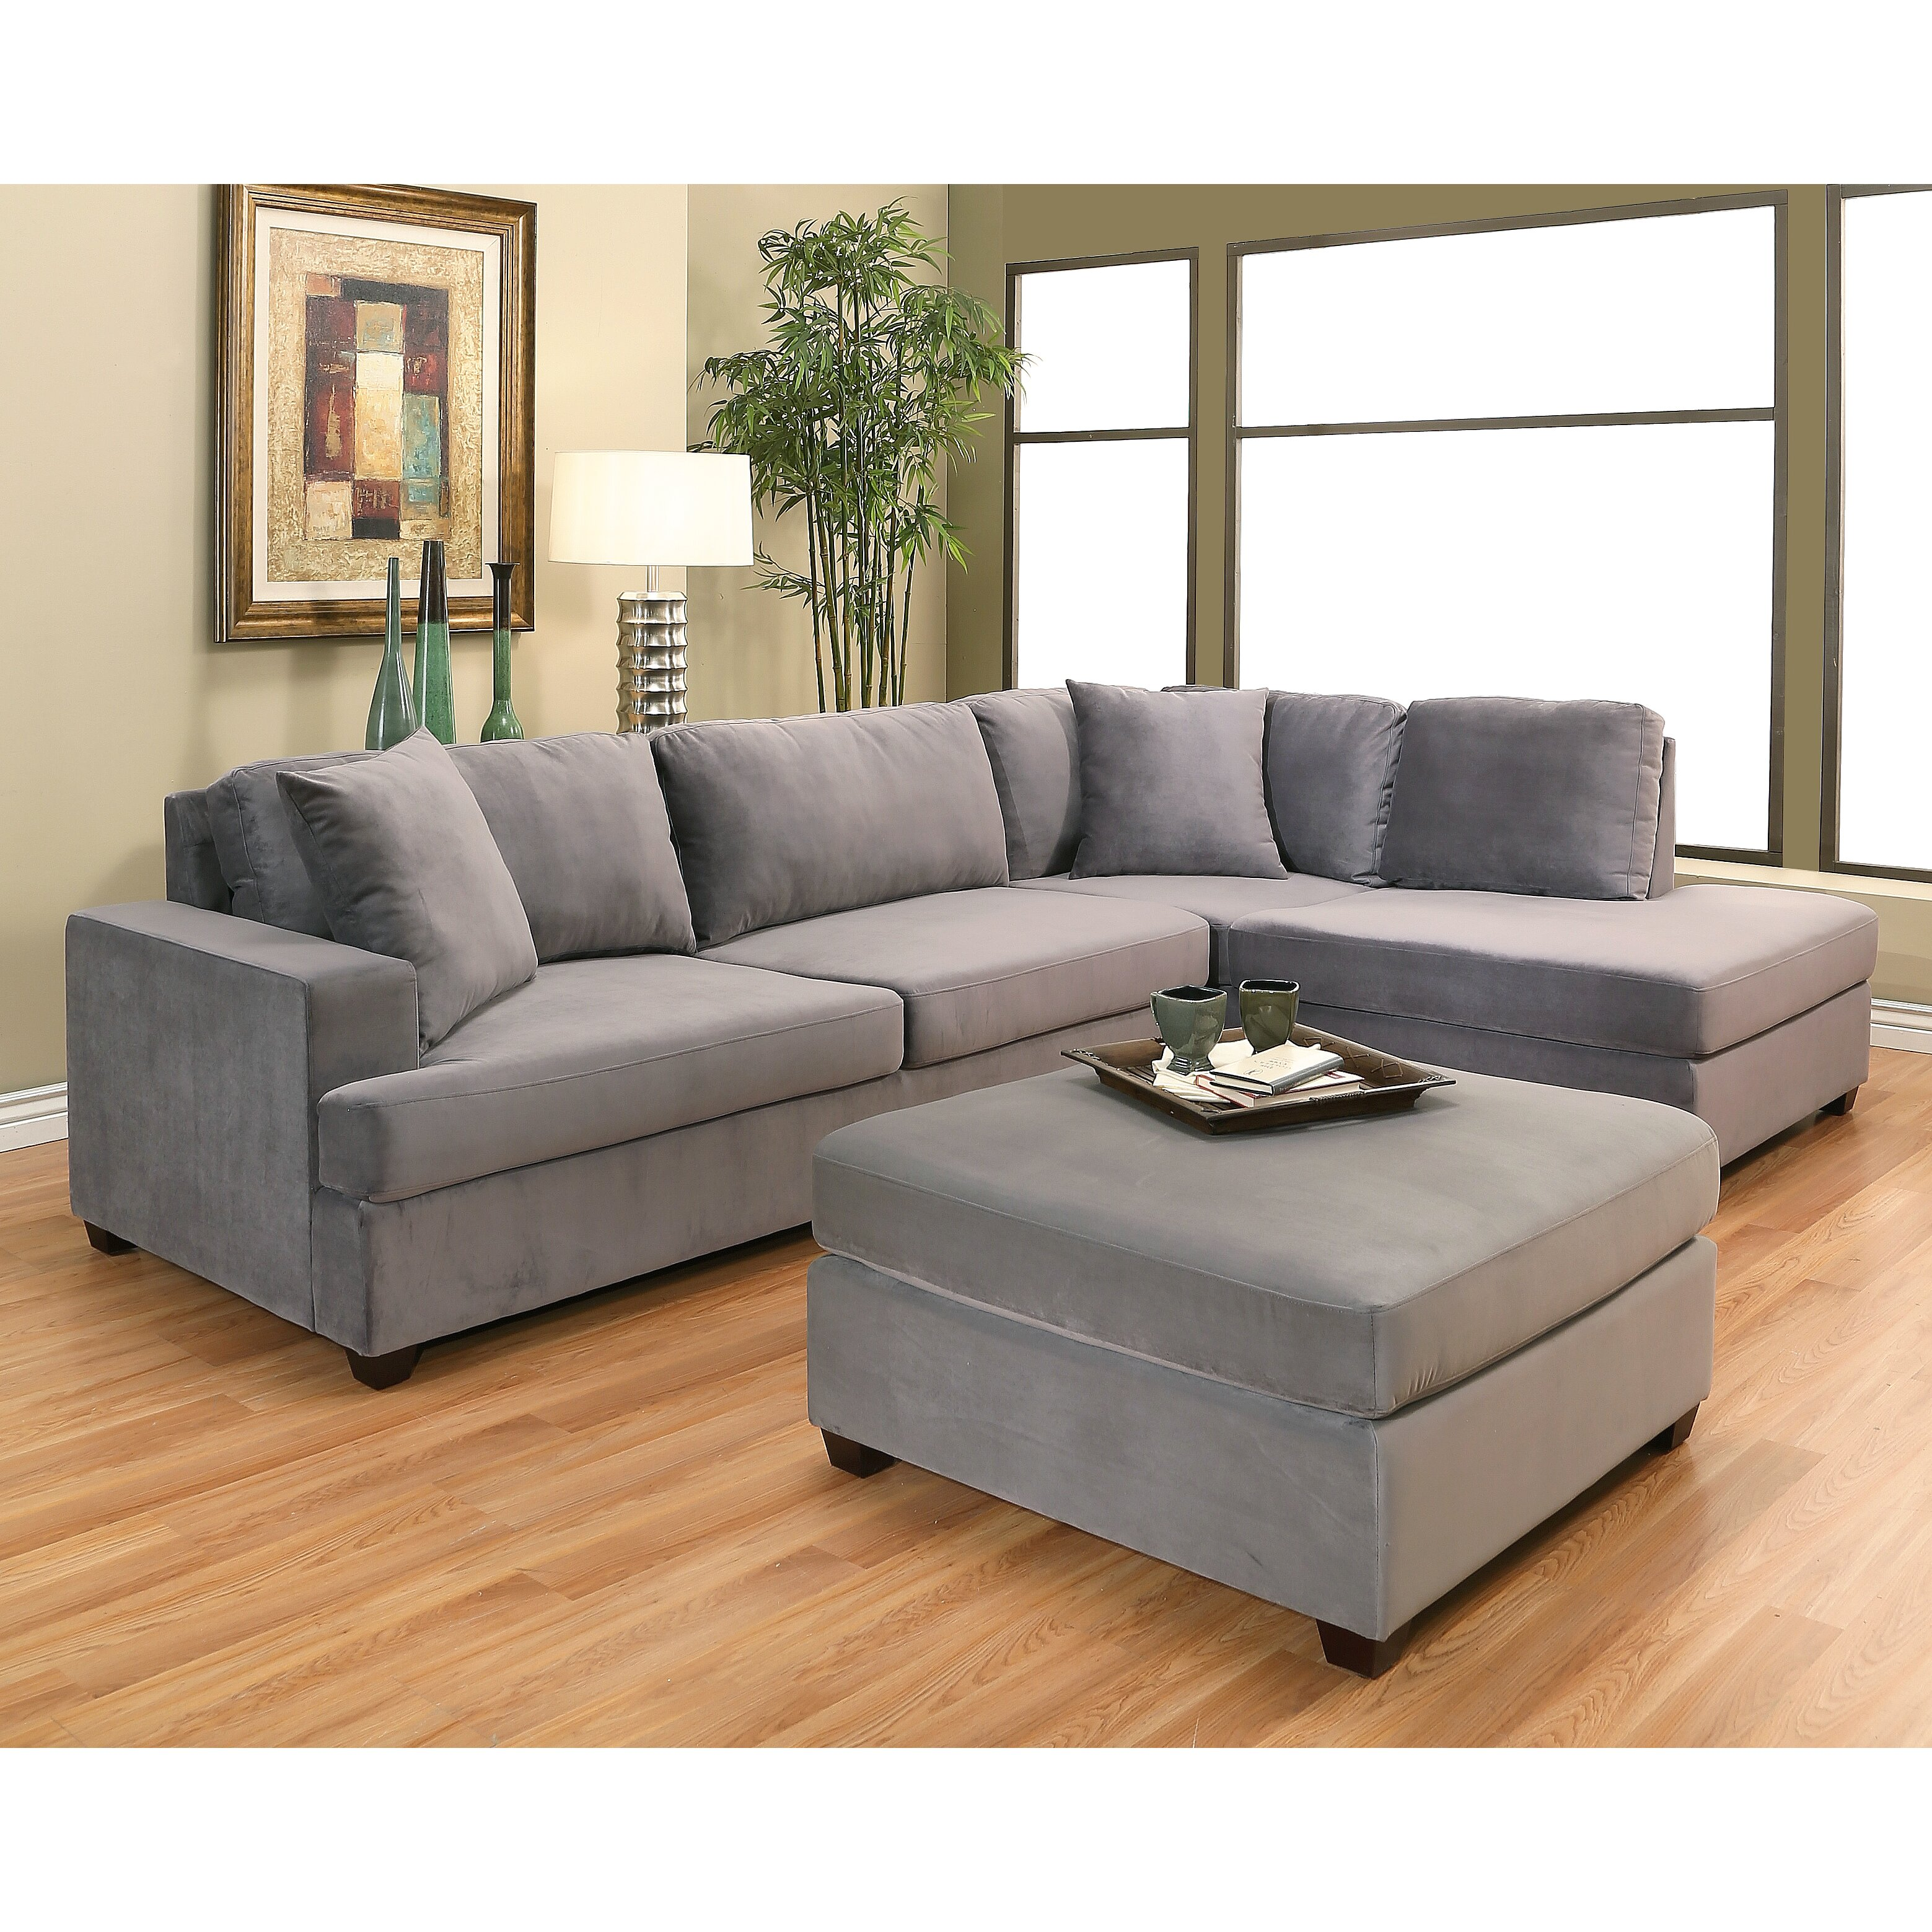 Sectional Sofas For Sale In Huntsville Al: Brayden Studio Berryhill Chaise Sectional